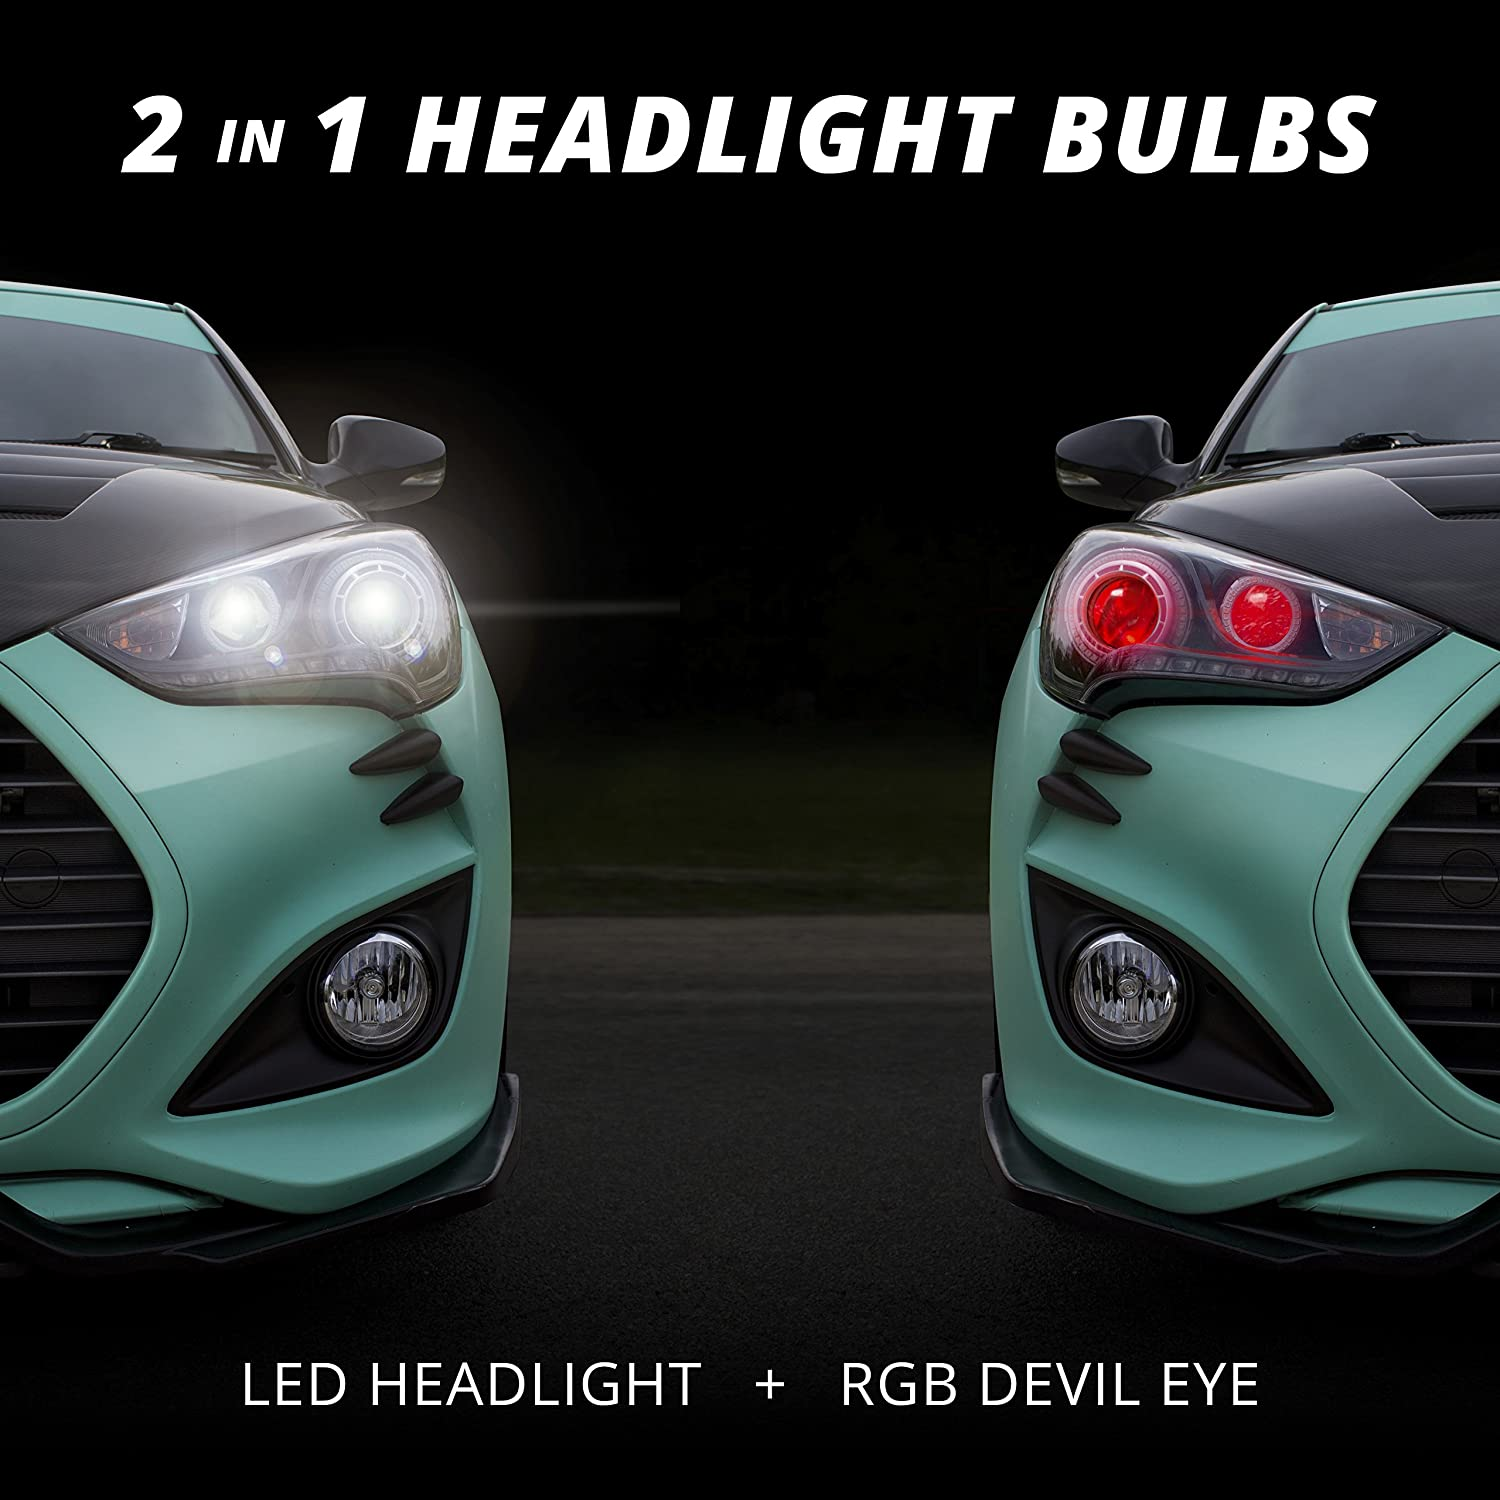 H11 2in1 Led Headlight Bulb Kit Xkchrome Smartphone Would Check Voltage Coming Out Of The Head Light Switch App Enabled Bluetooth Rgb Devil Eye Conversion Automotive